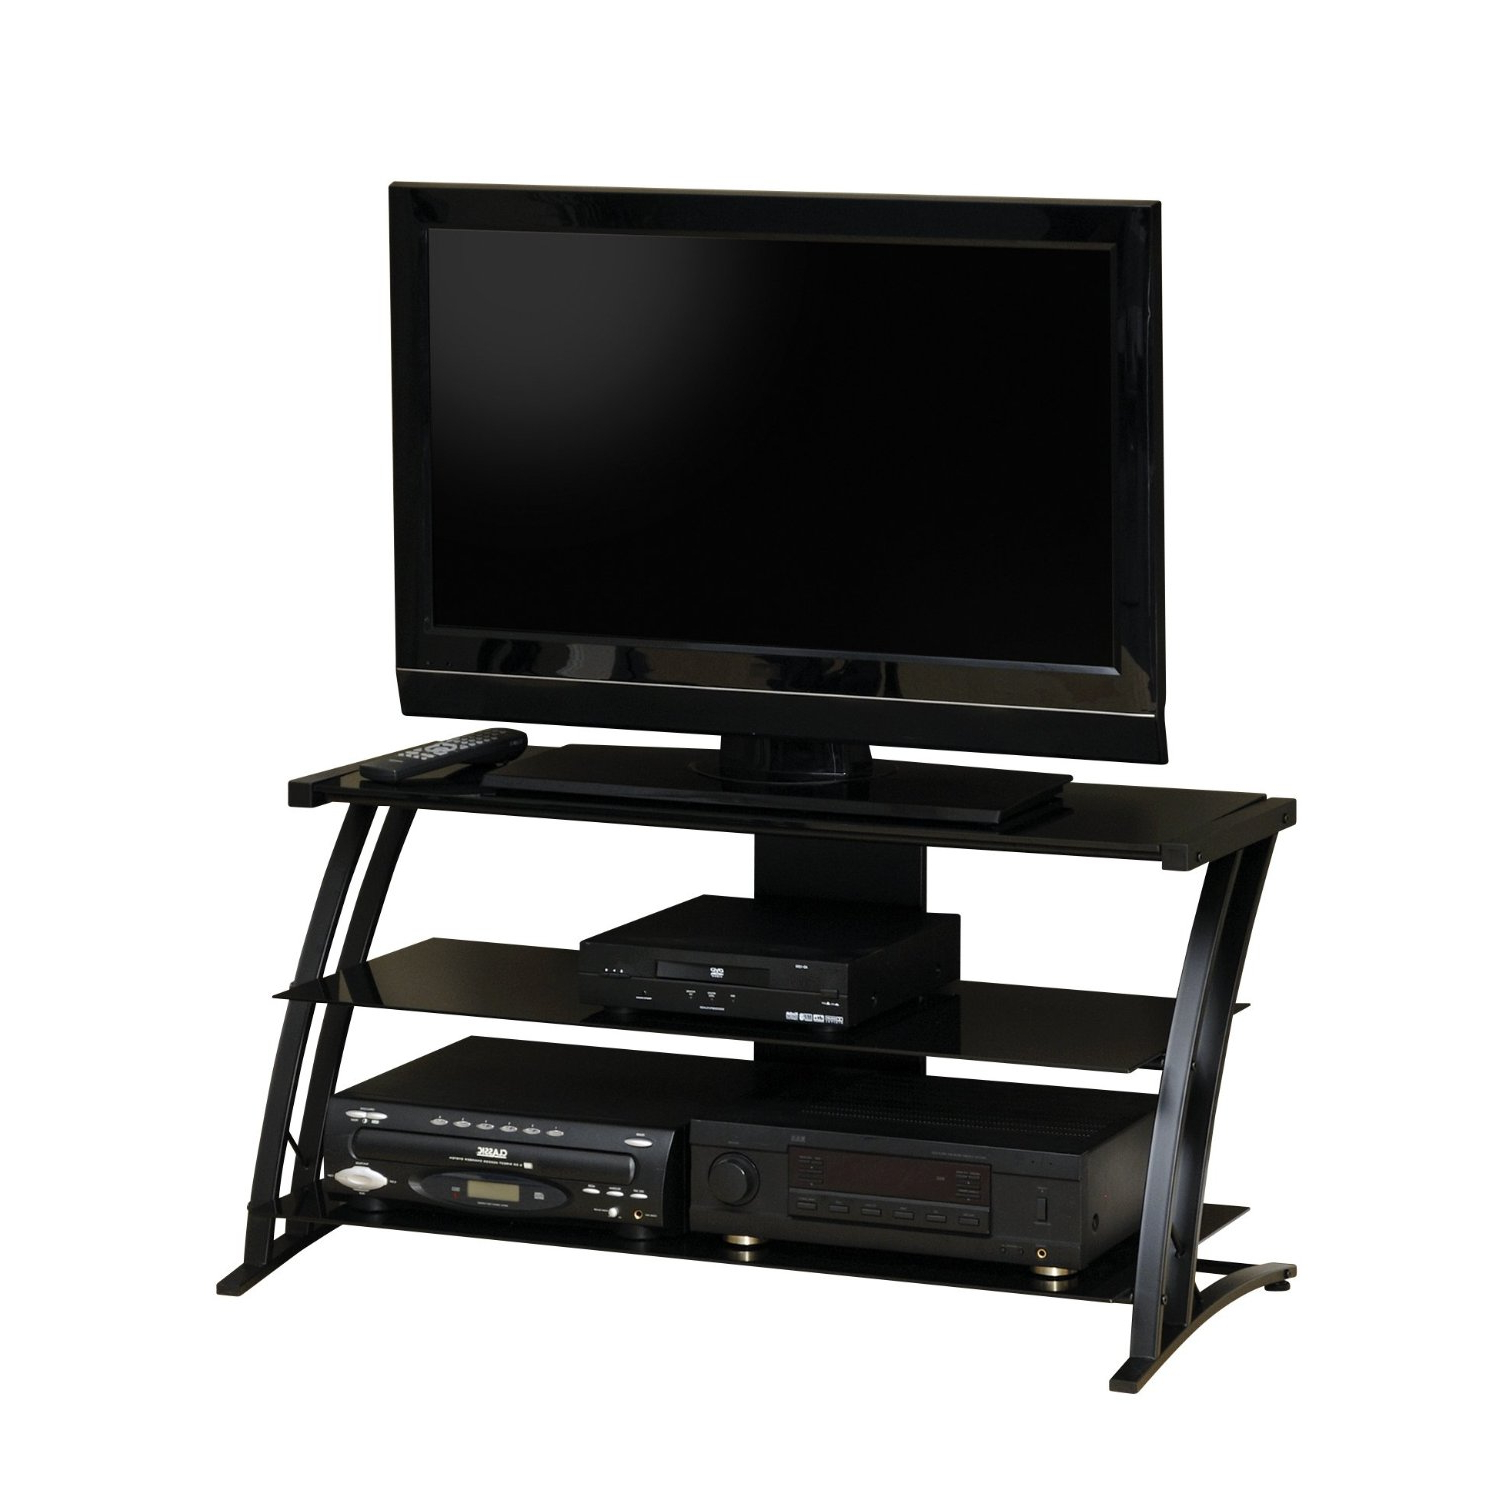 Sonax Tv Wall Mount Corliving Distribution Surrey Media Cabinet Best Within Best And Newest Sonax Tv Stands (View 8 of 20)